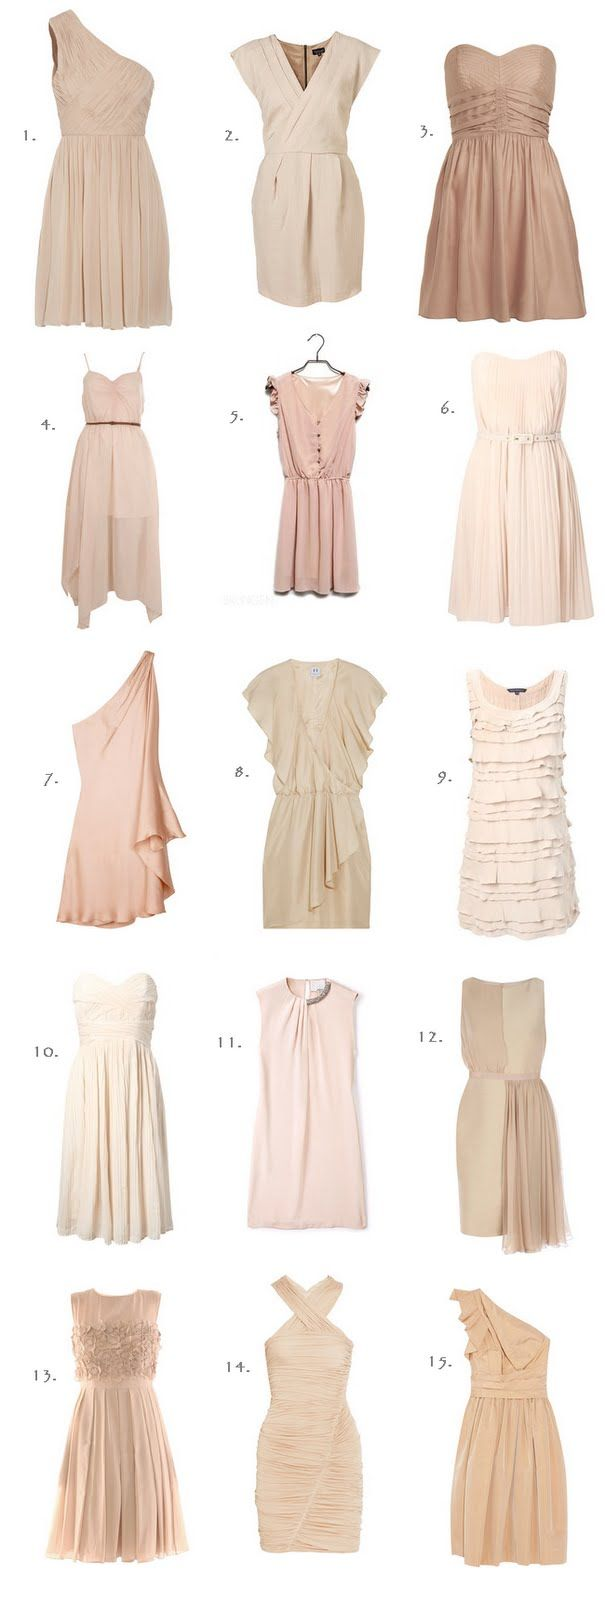 here's an example of how blush bridesmaids dresses can compliment each other, regardless of style